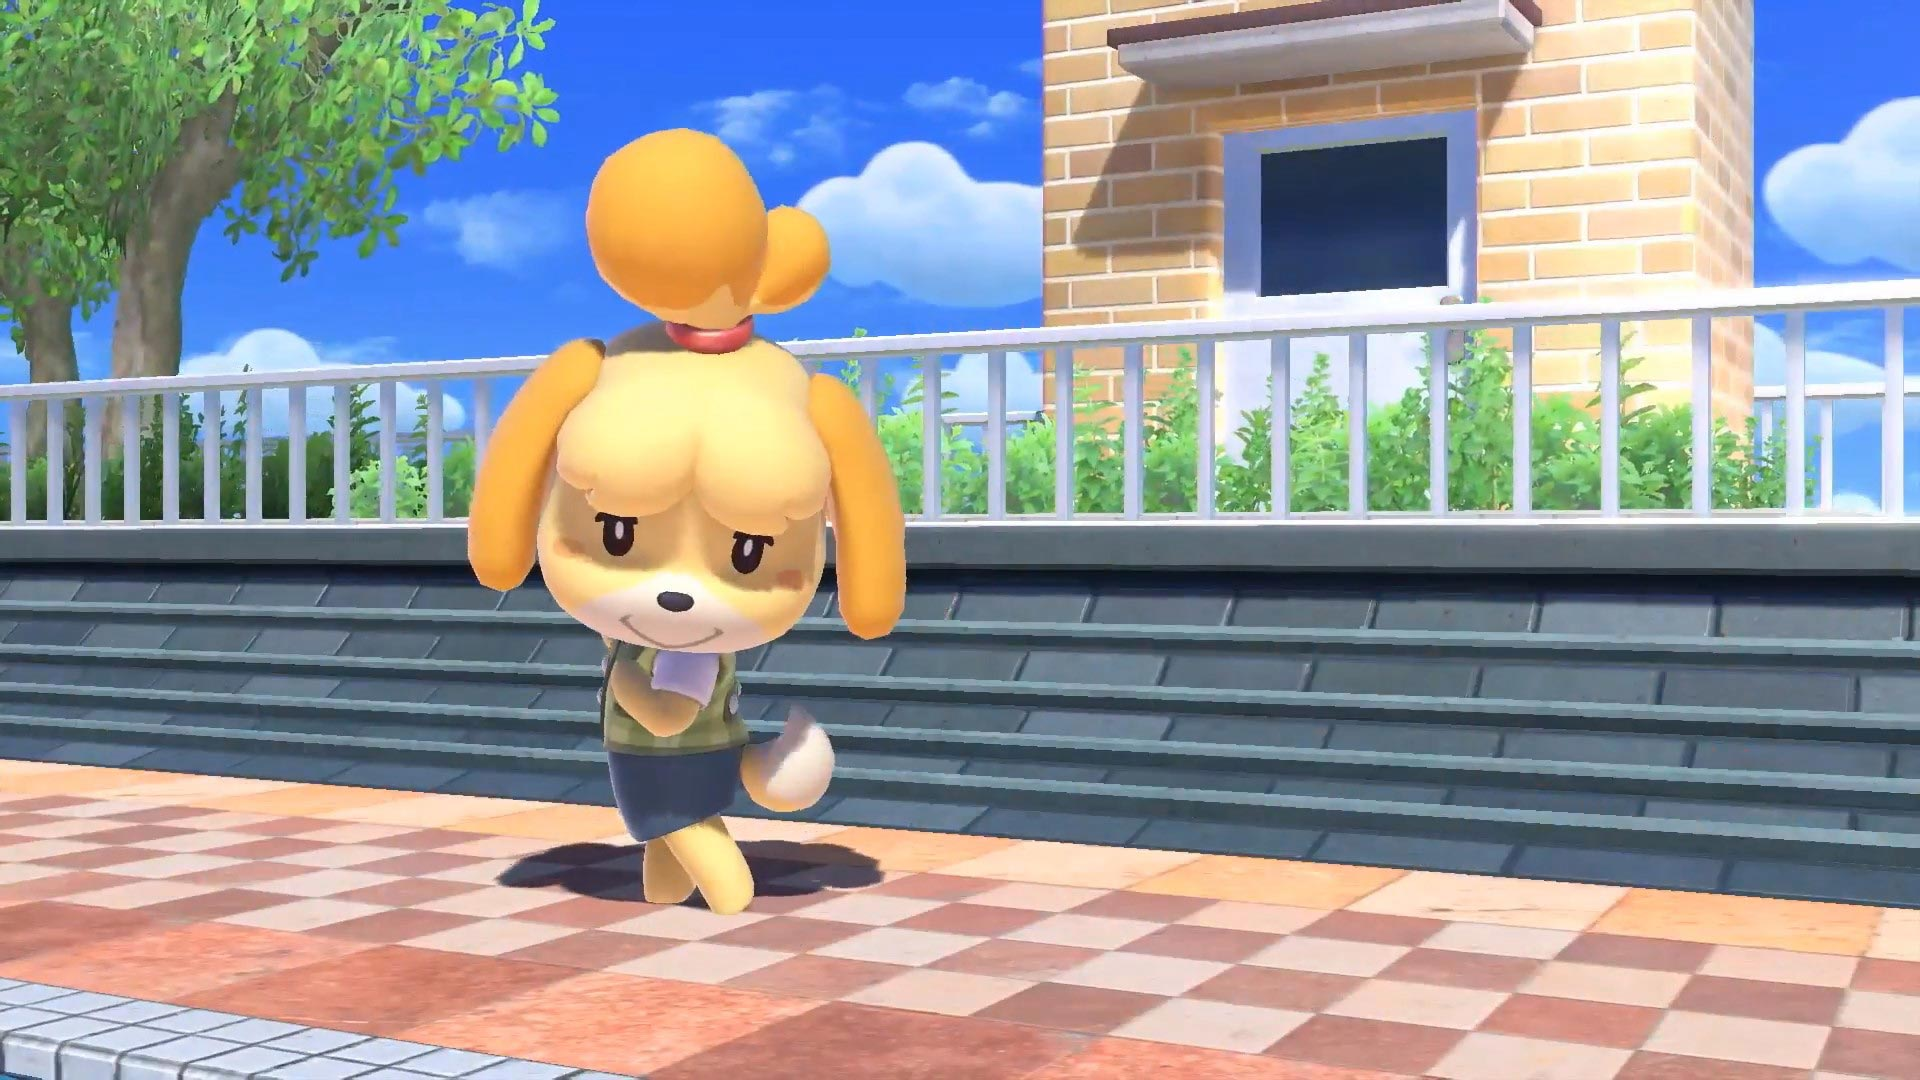 Isabelle in Super Smash Bros. Ultimate 9 out of 9 image gallery